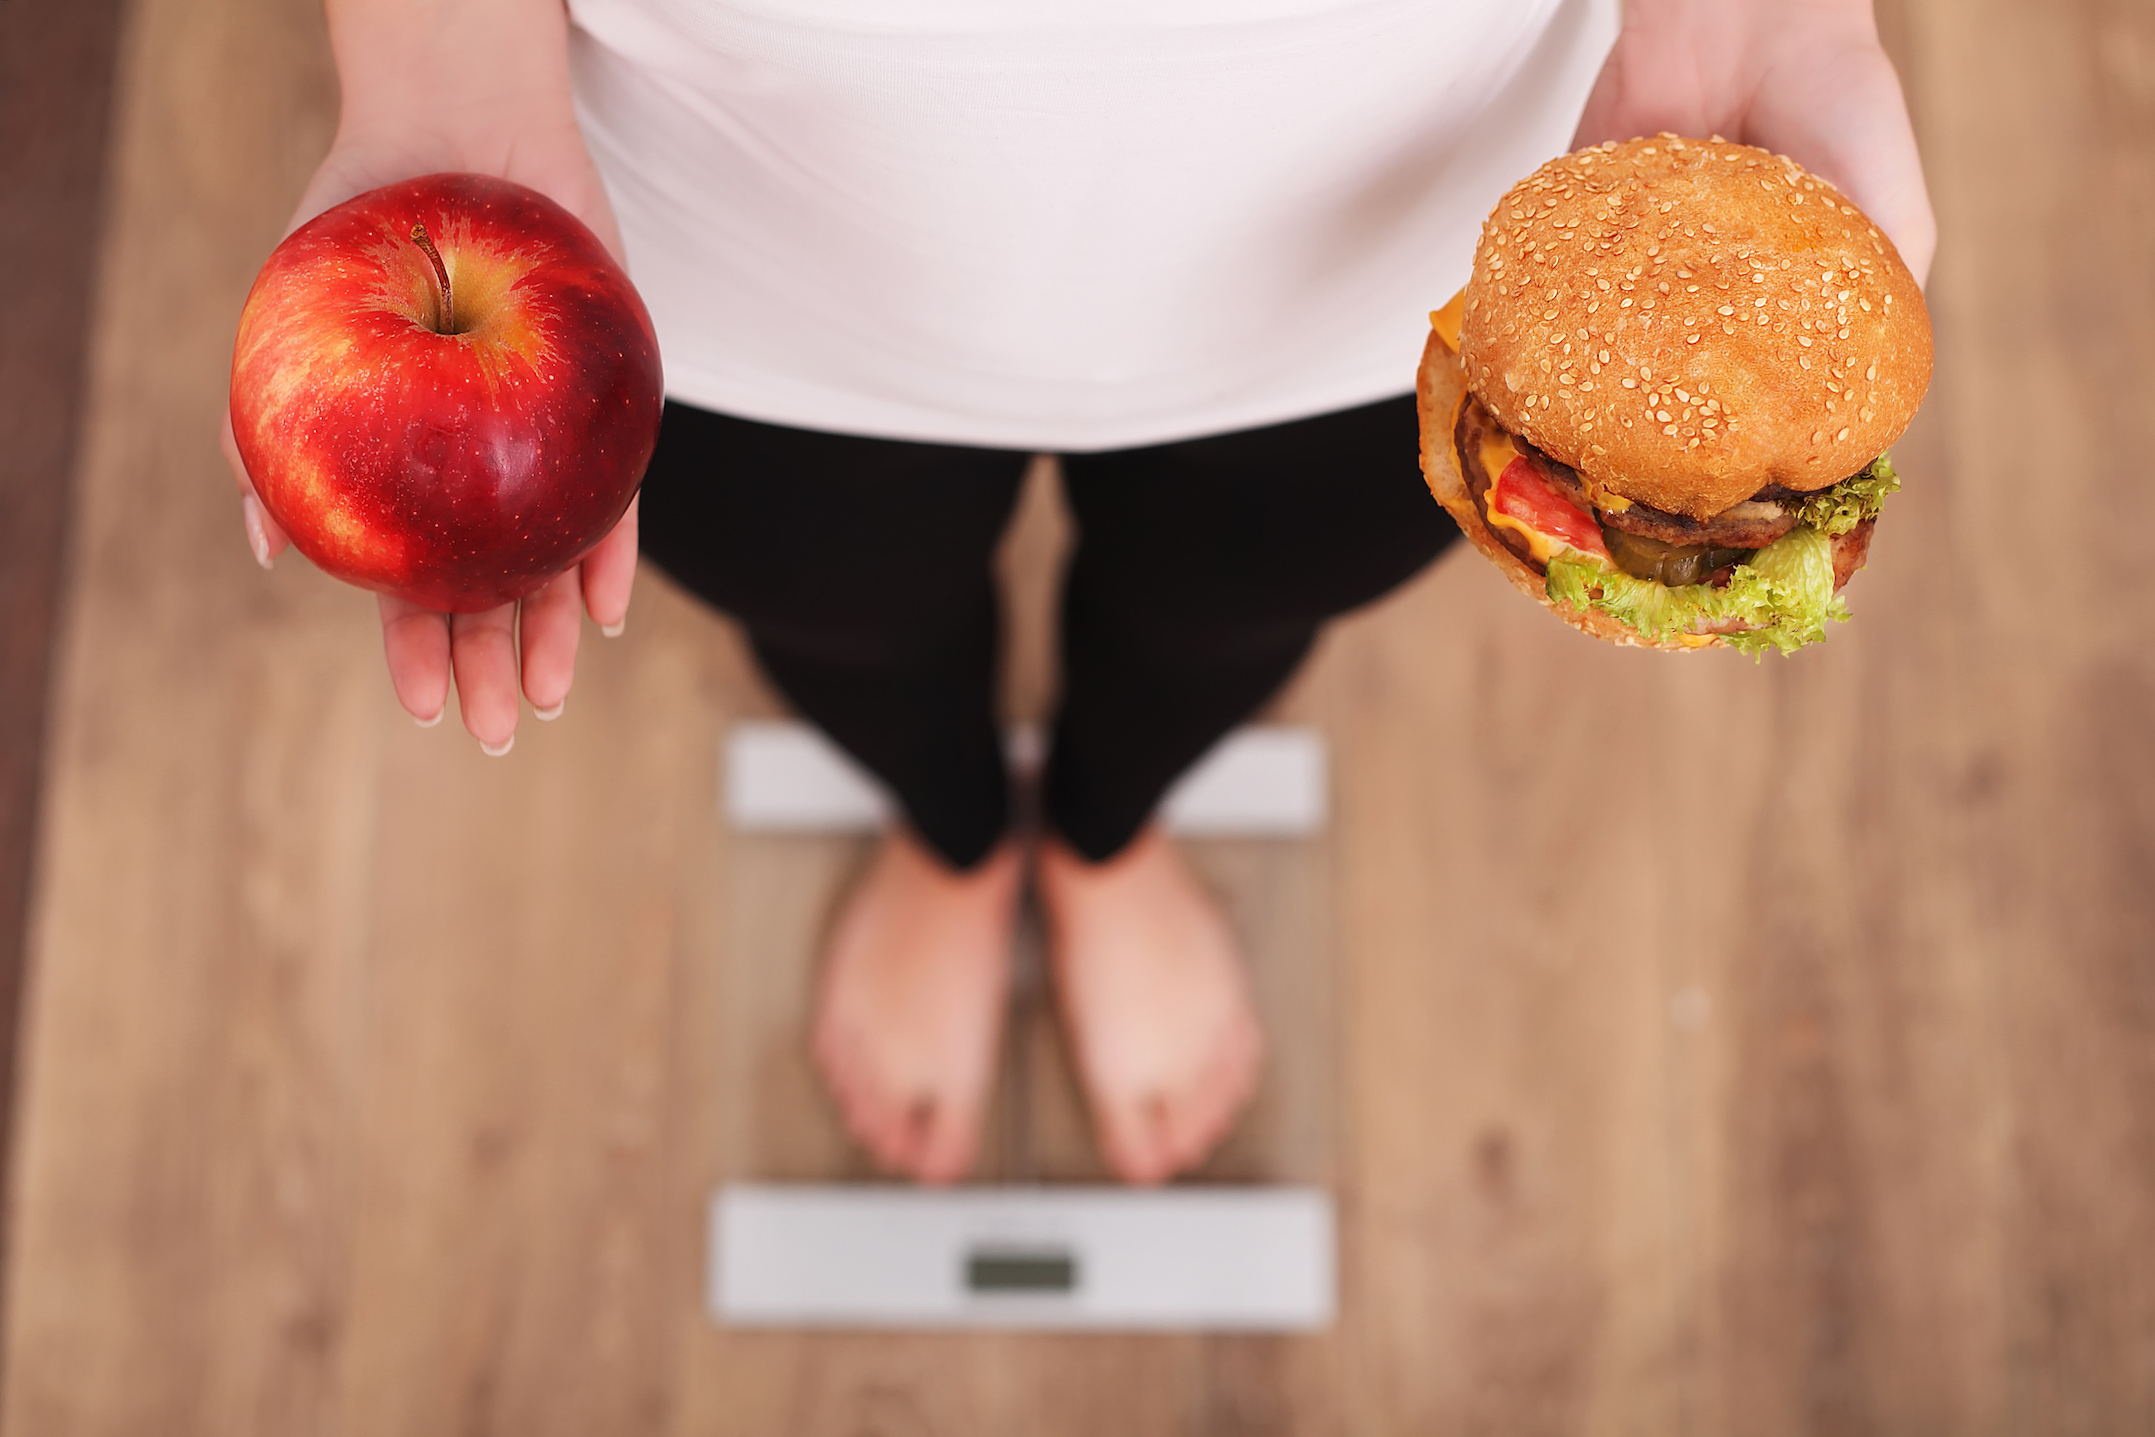 A new study has found that successful weight loss maintainers have different behavioral and physiological responses to food than people with obesity and those who consistently stay lean.